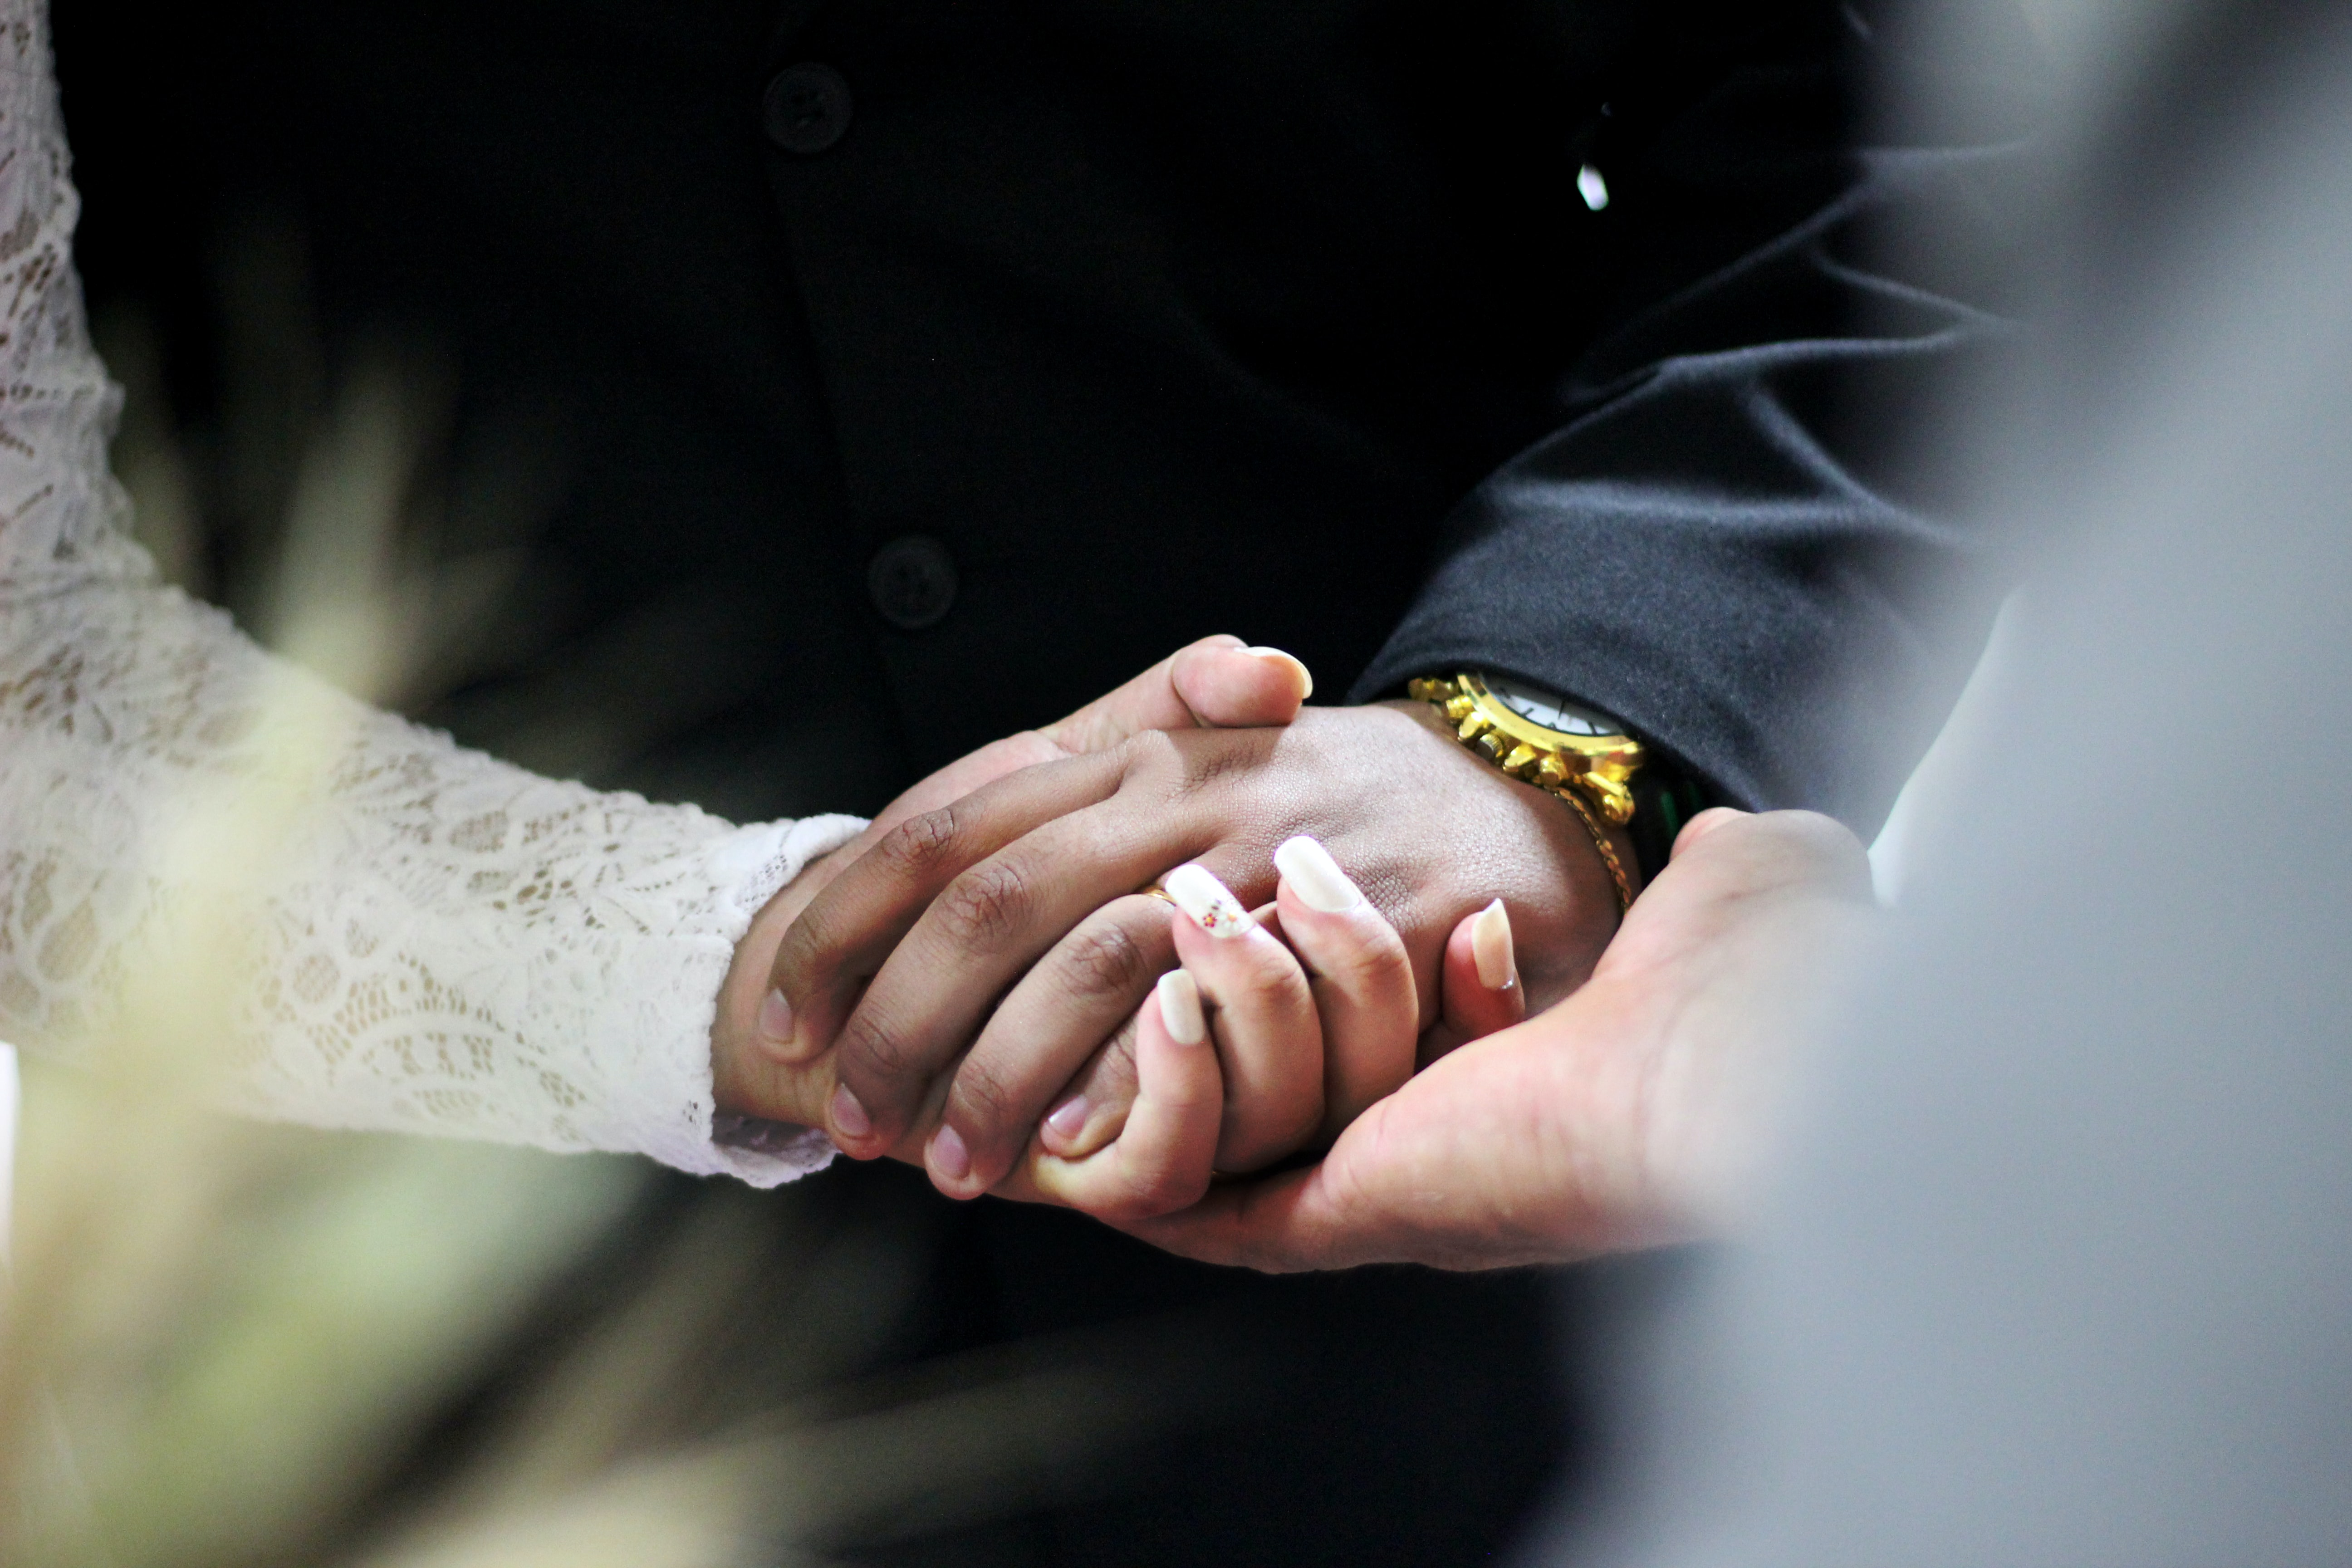 A couple holds hands as they take their vows during a wedding ceremony.